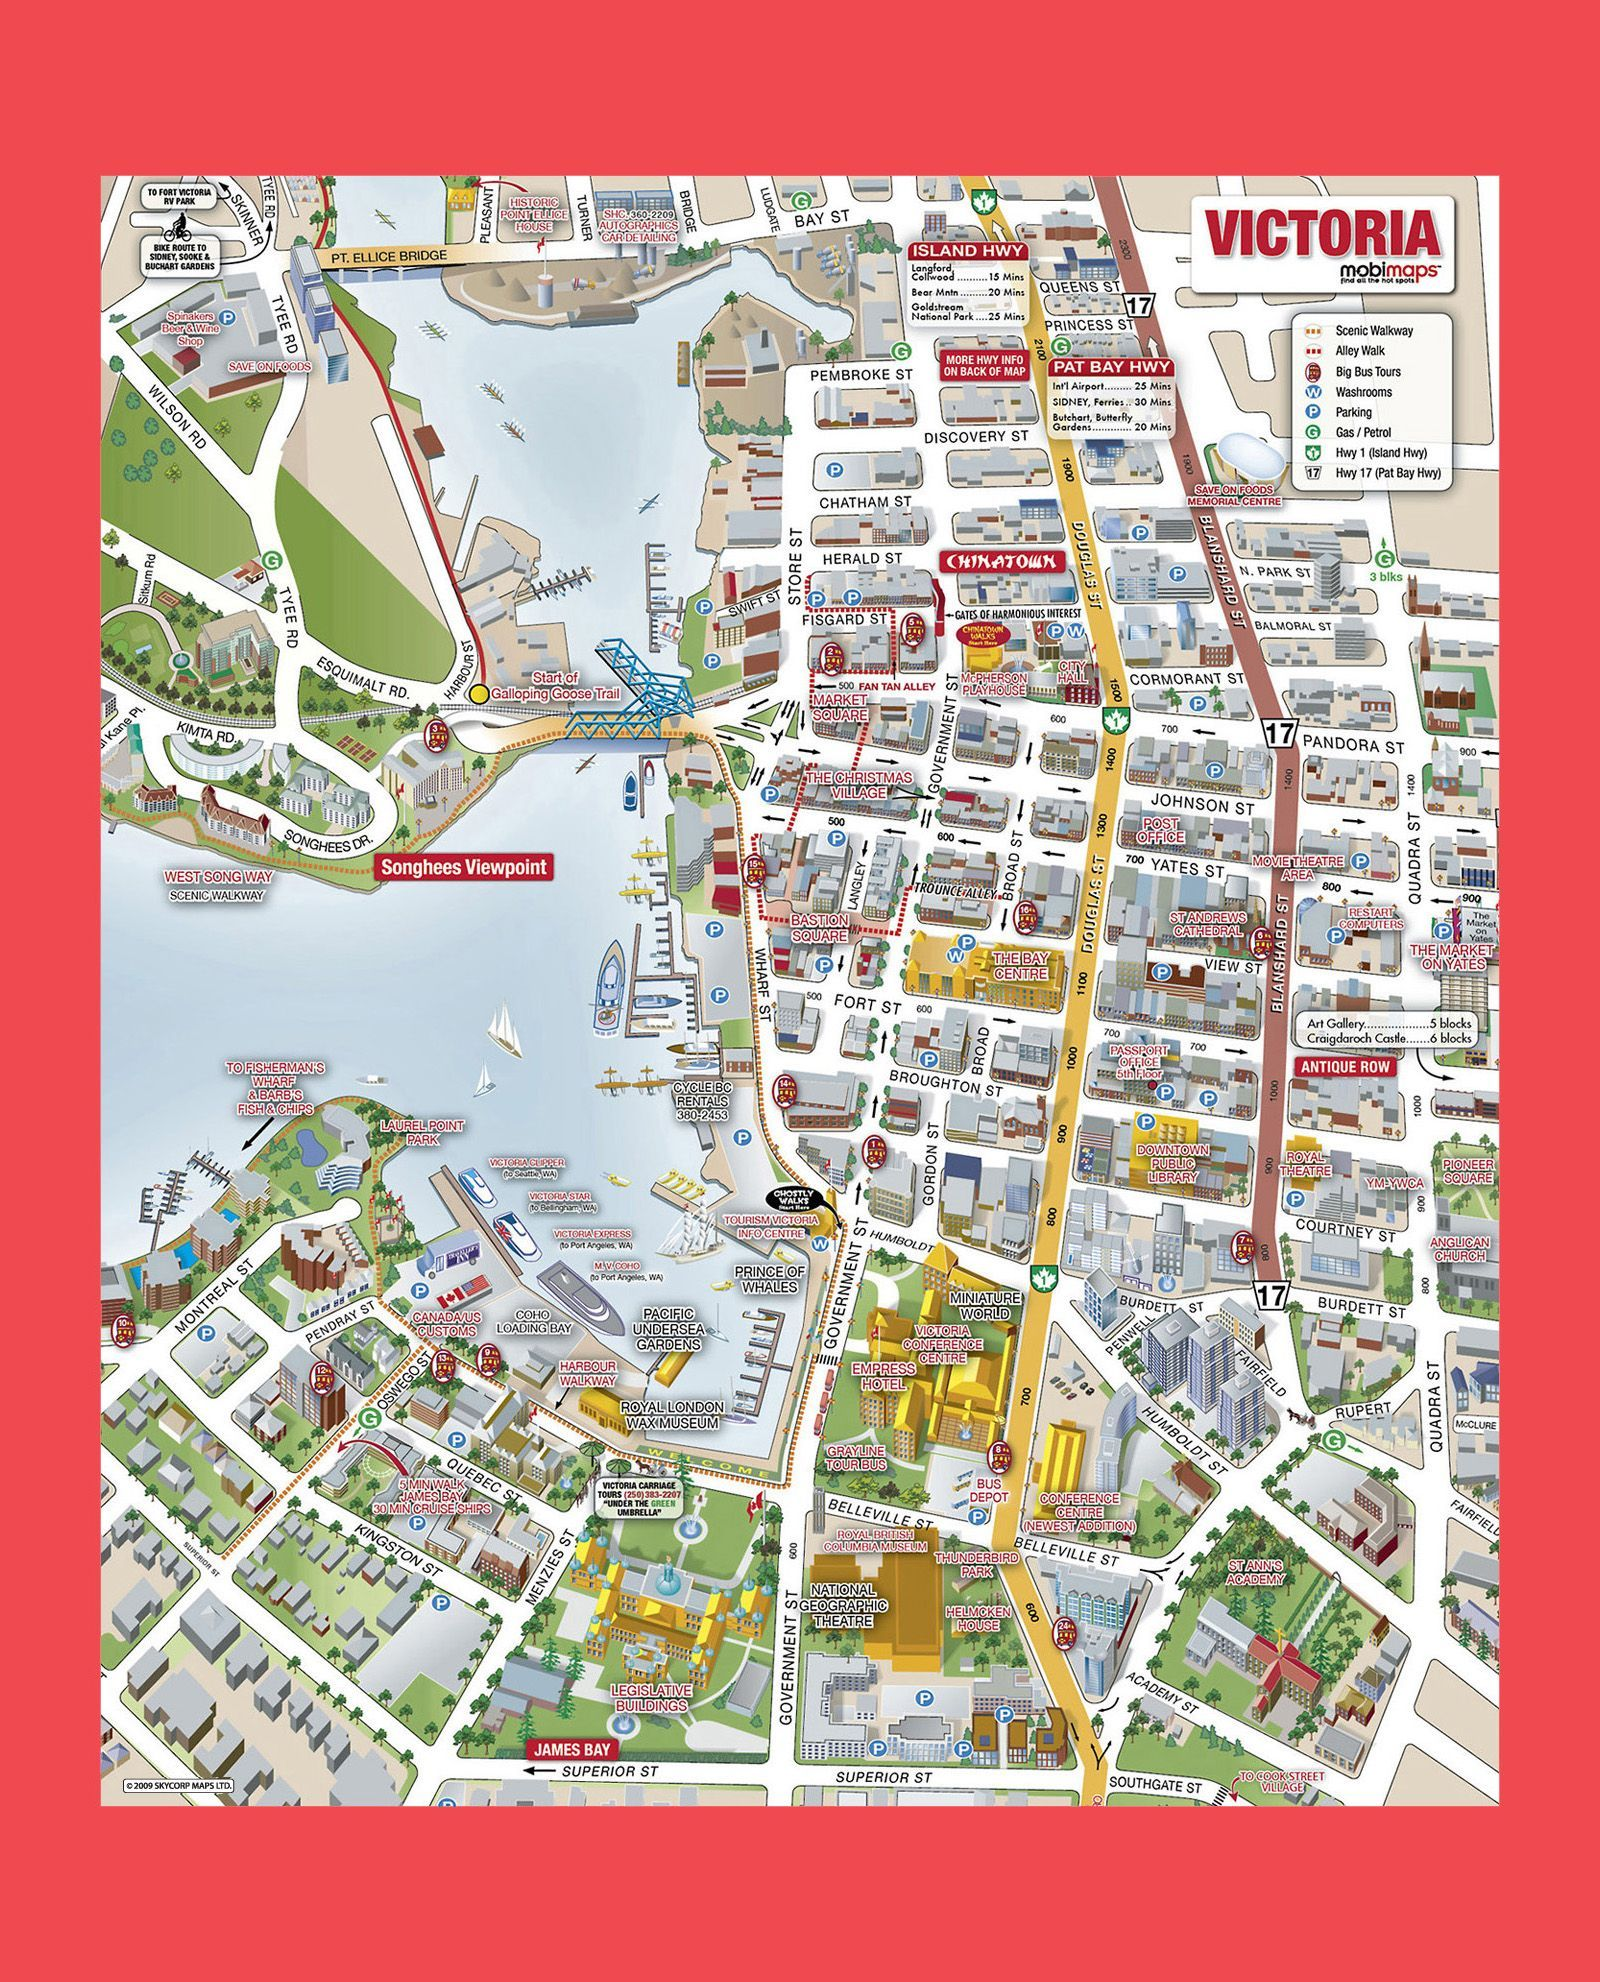 Map Of Victoria Bc Canada Victoria Cruise Port Guide | CruisePortWiki.| Victoria city